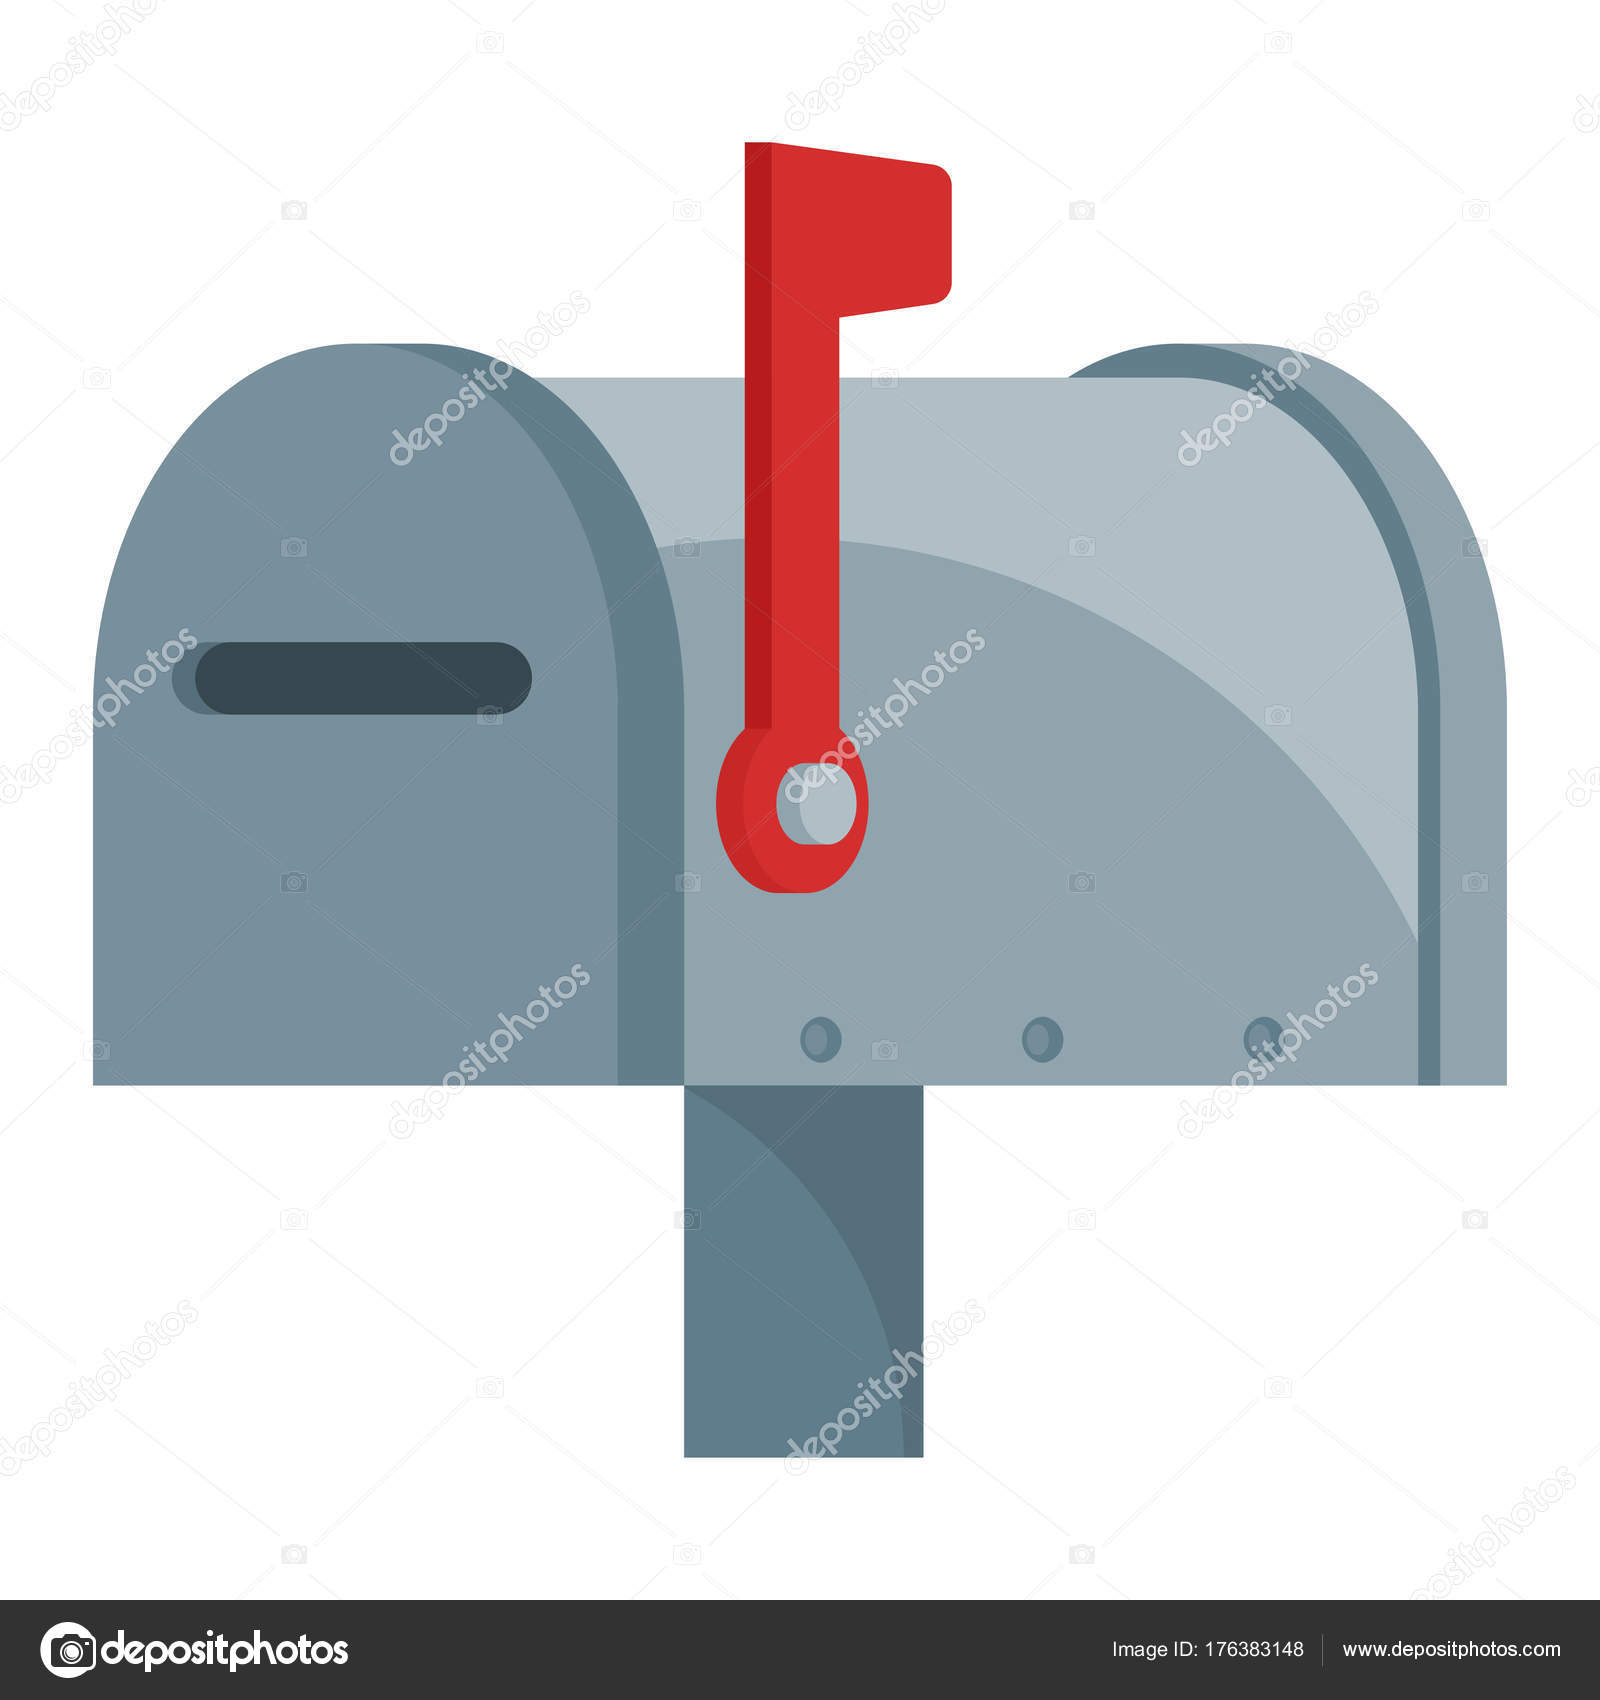 Illustration Icon Mailbox Closed Condition Flag Stock Vector